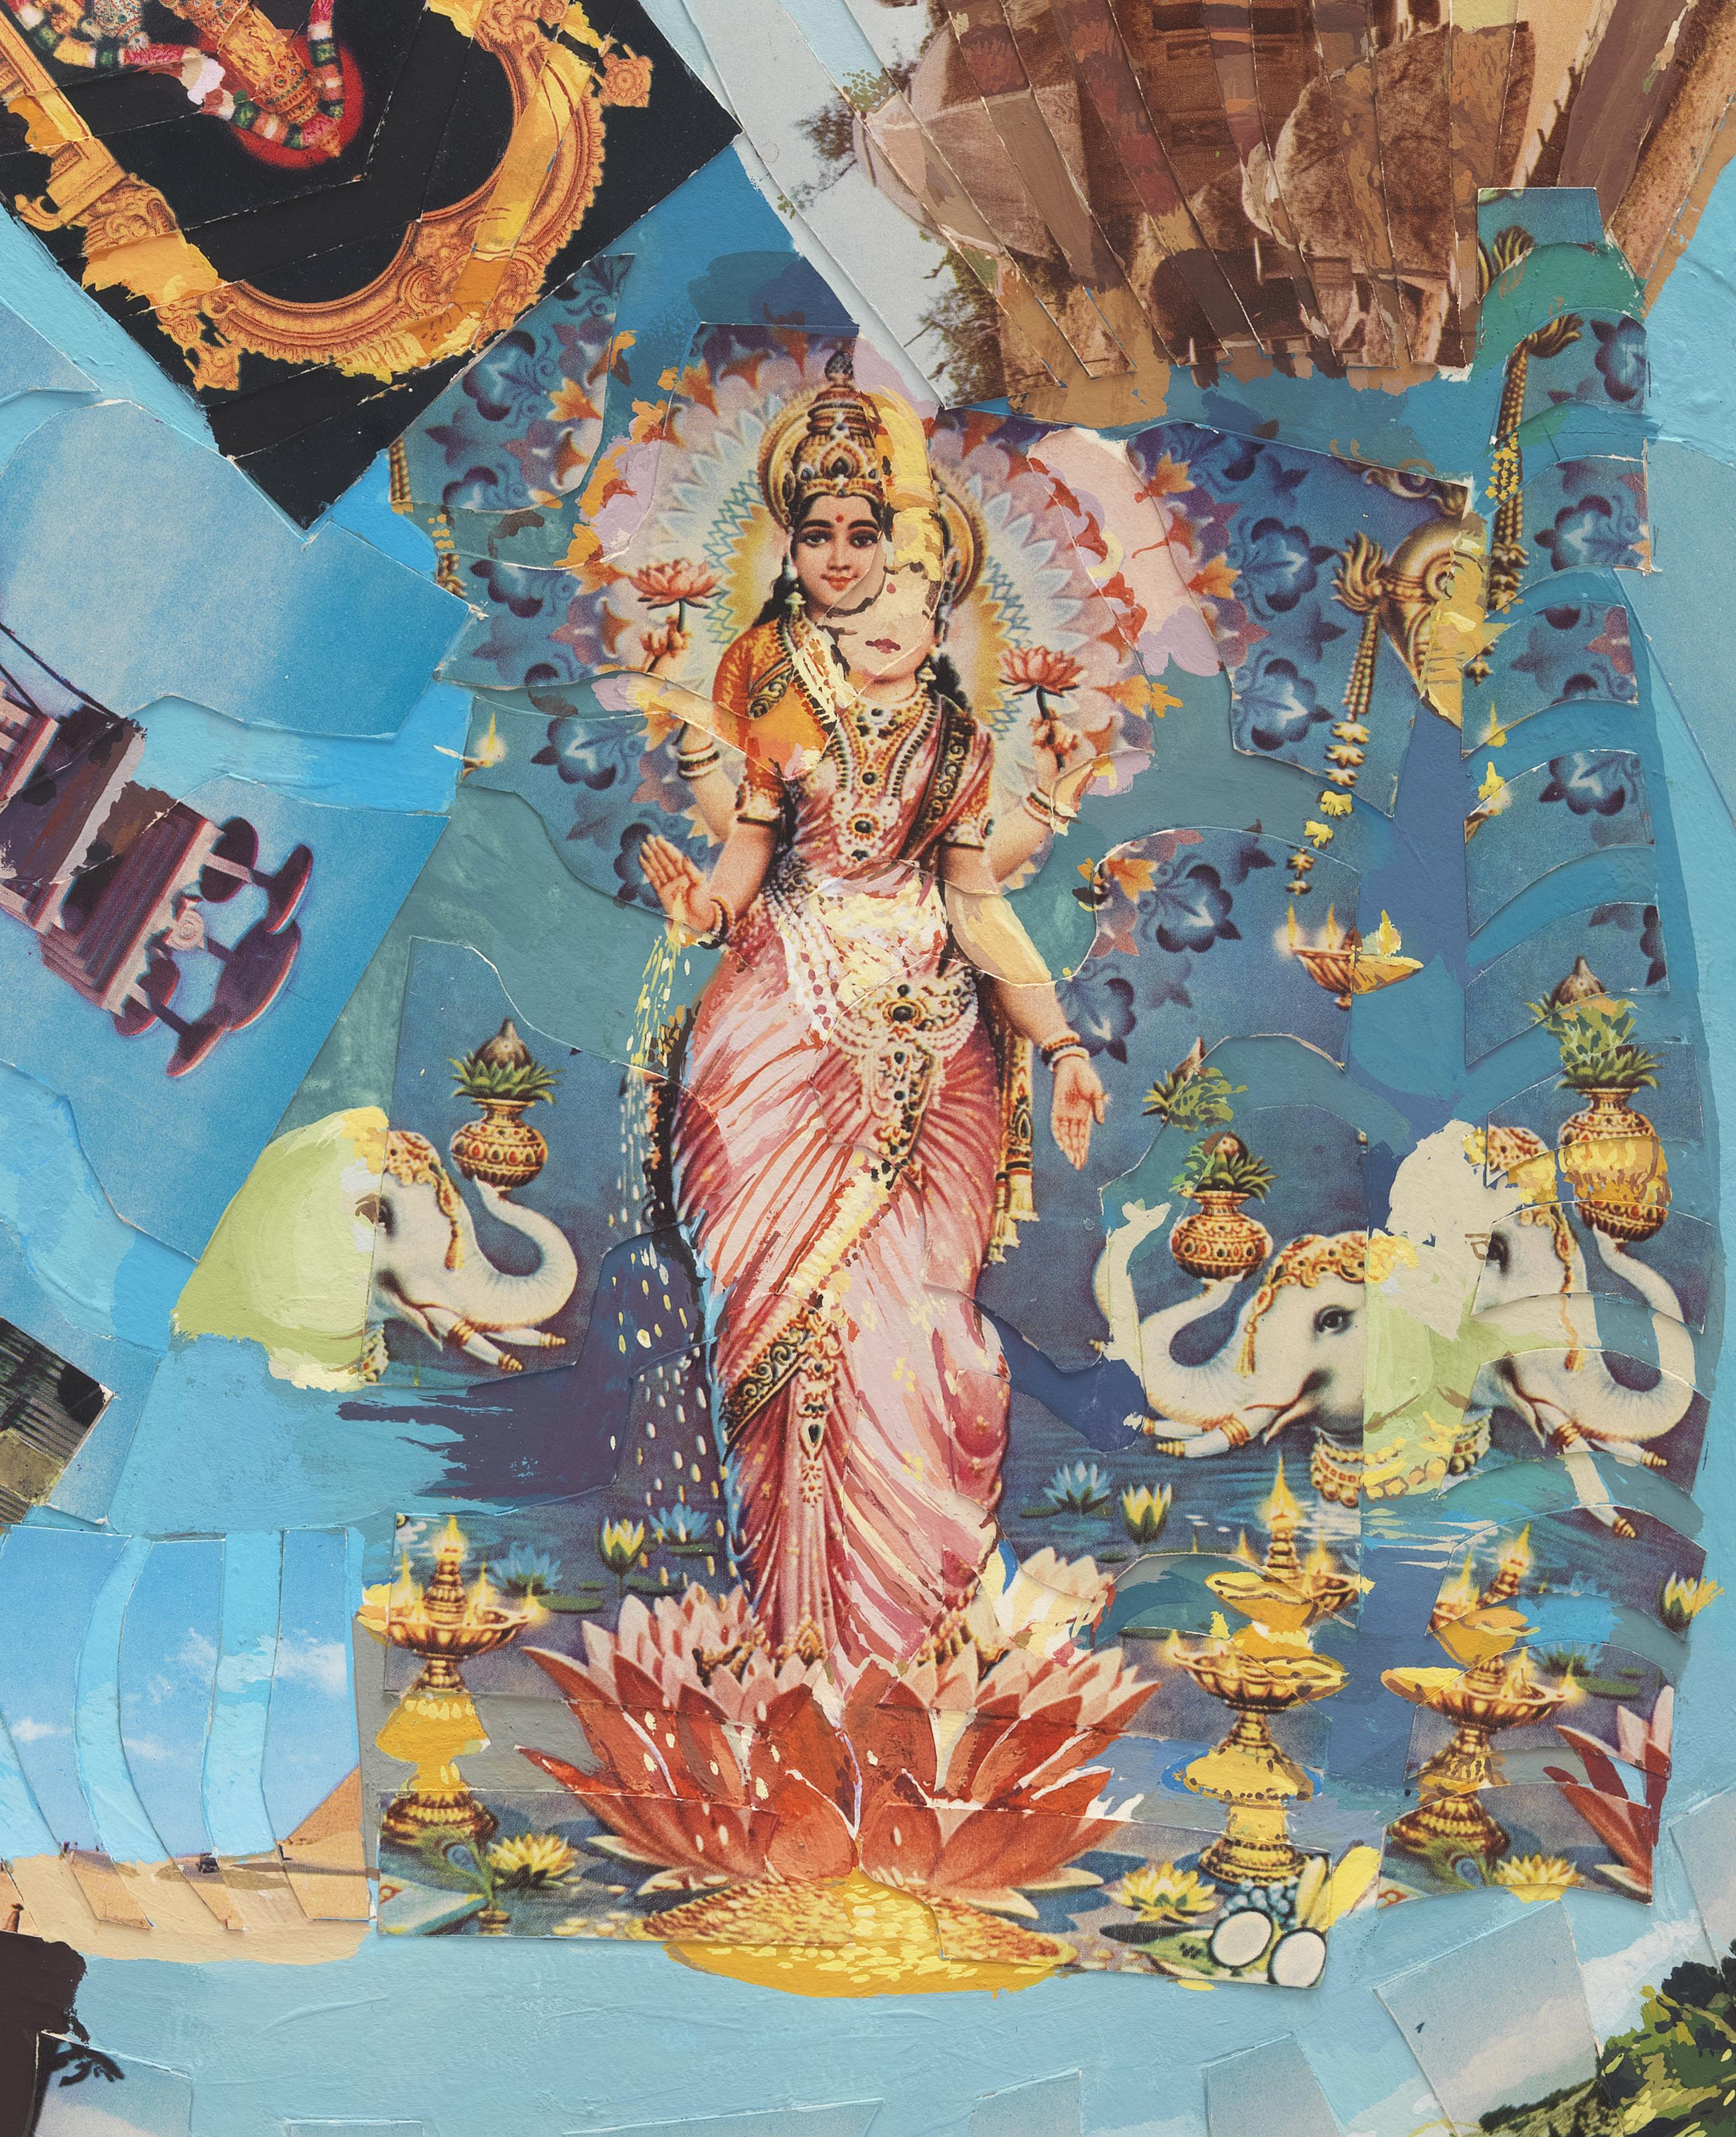 A blue collage depicts a crowned woman in a pink sari who stands in a large flower surrounded by three elephant heads, golden lamps, and other ornamental patterns.